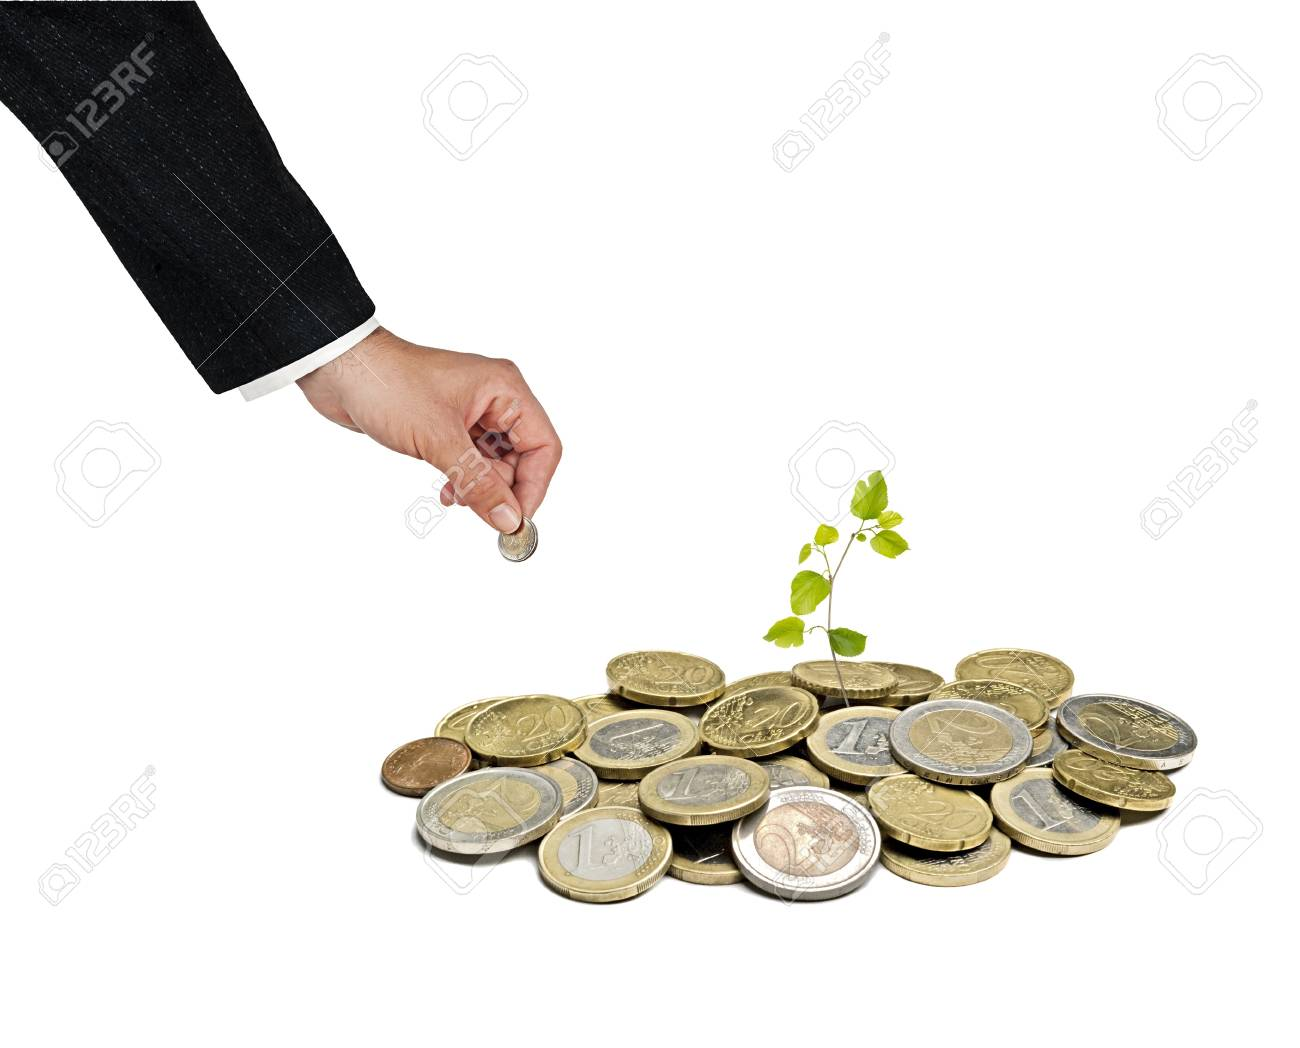 sapling growing from pile of coins Stock Photo - 14066199